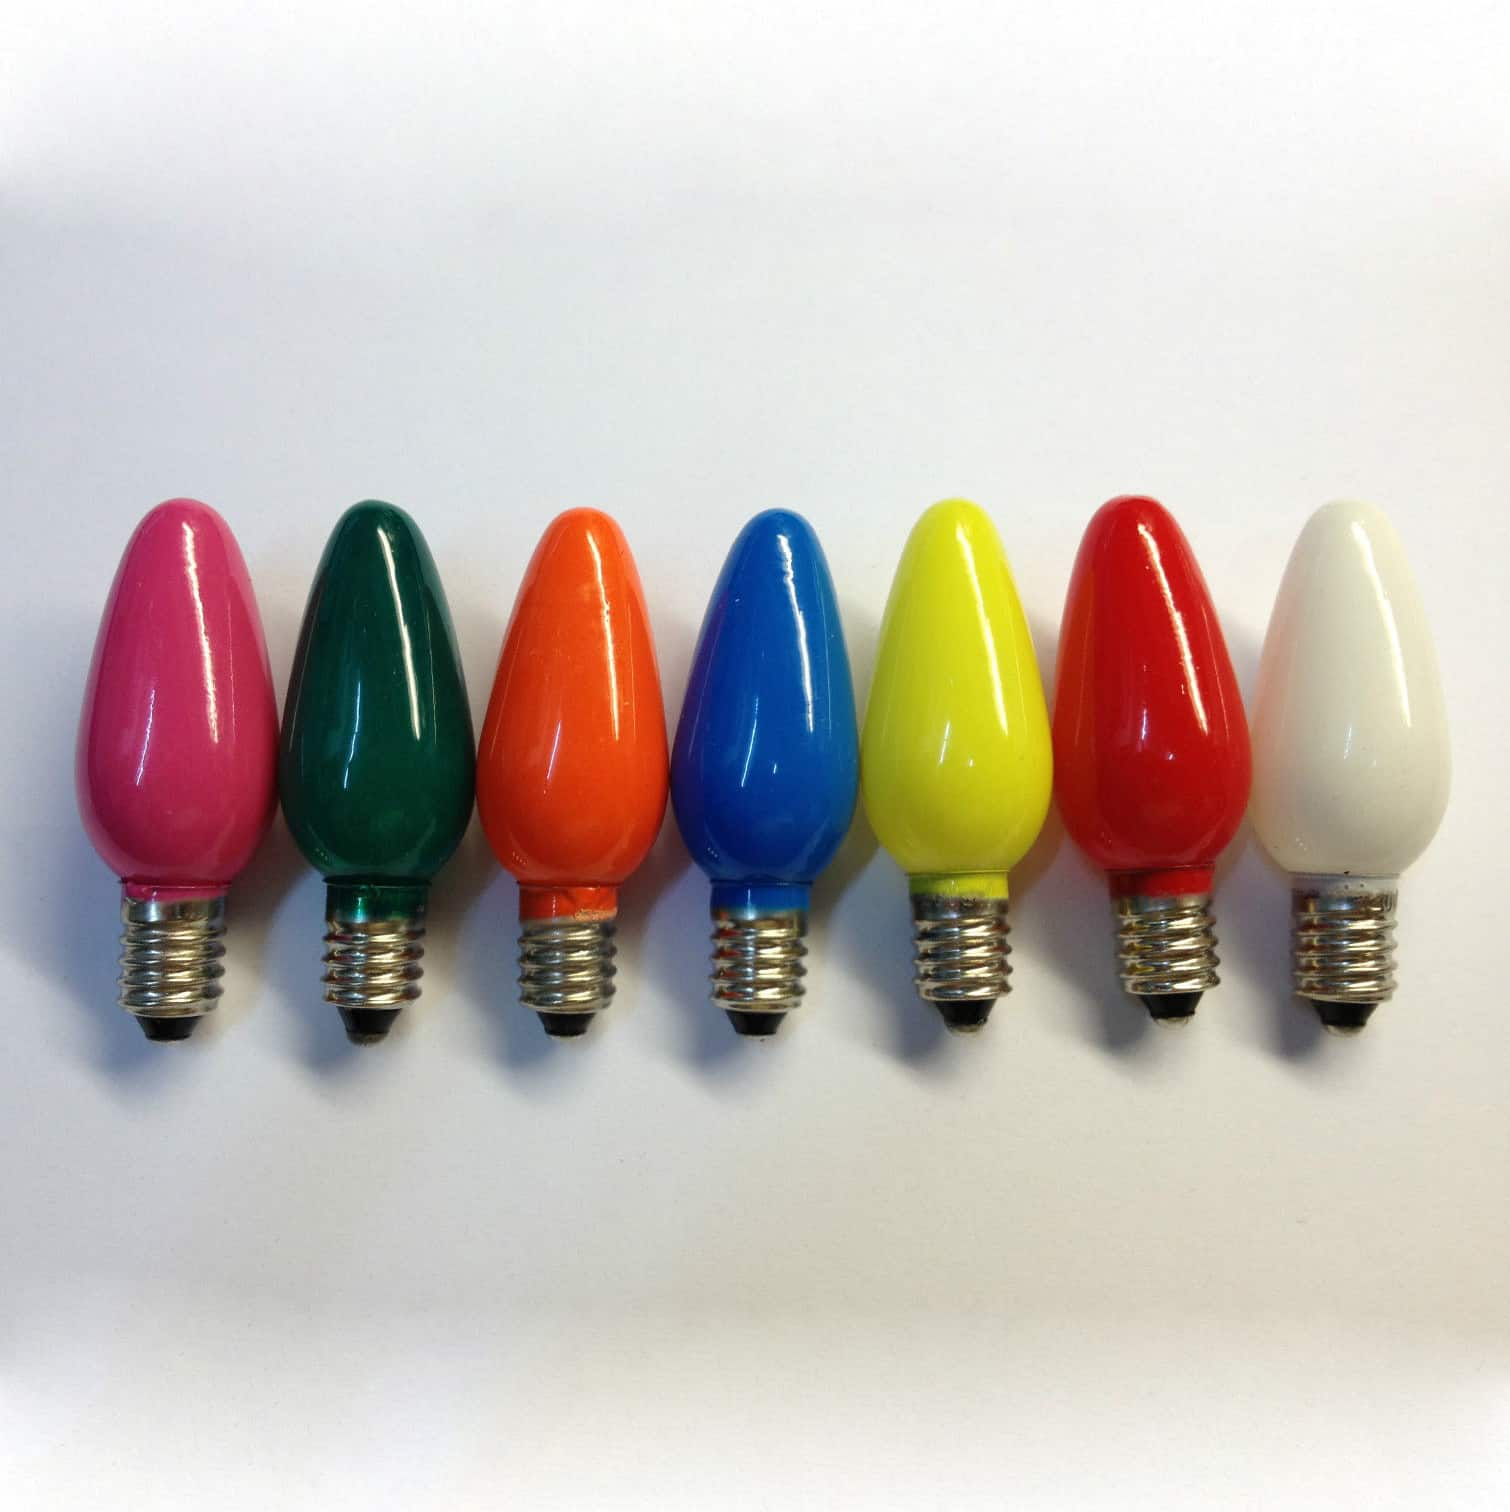 How To Replace Christmas Light Bulb.Details About 7x Replacement Christmas Light Bulbs 20v 3w E10 Opaque Multi Coloured Small M